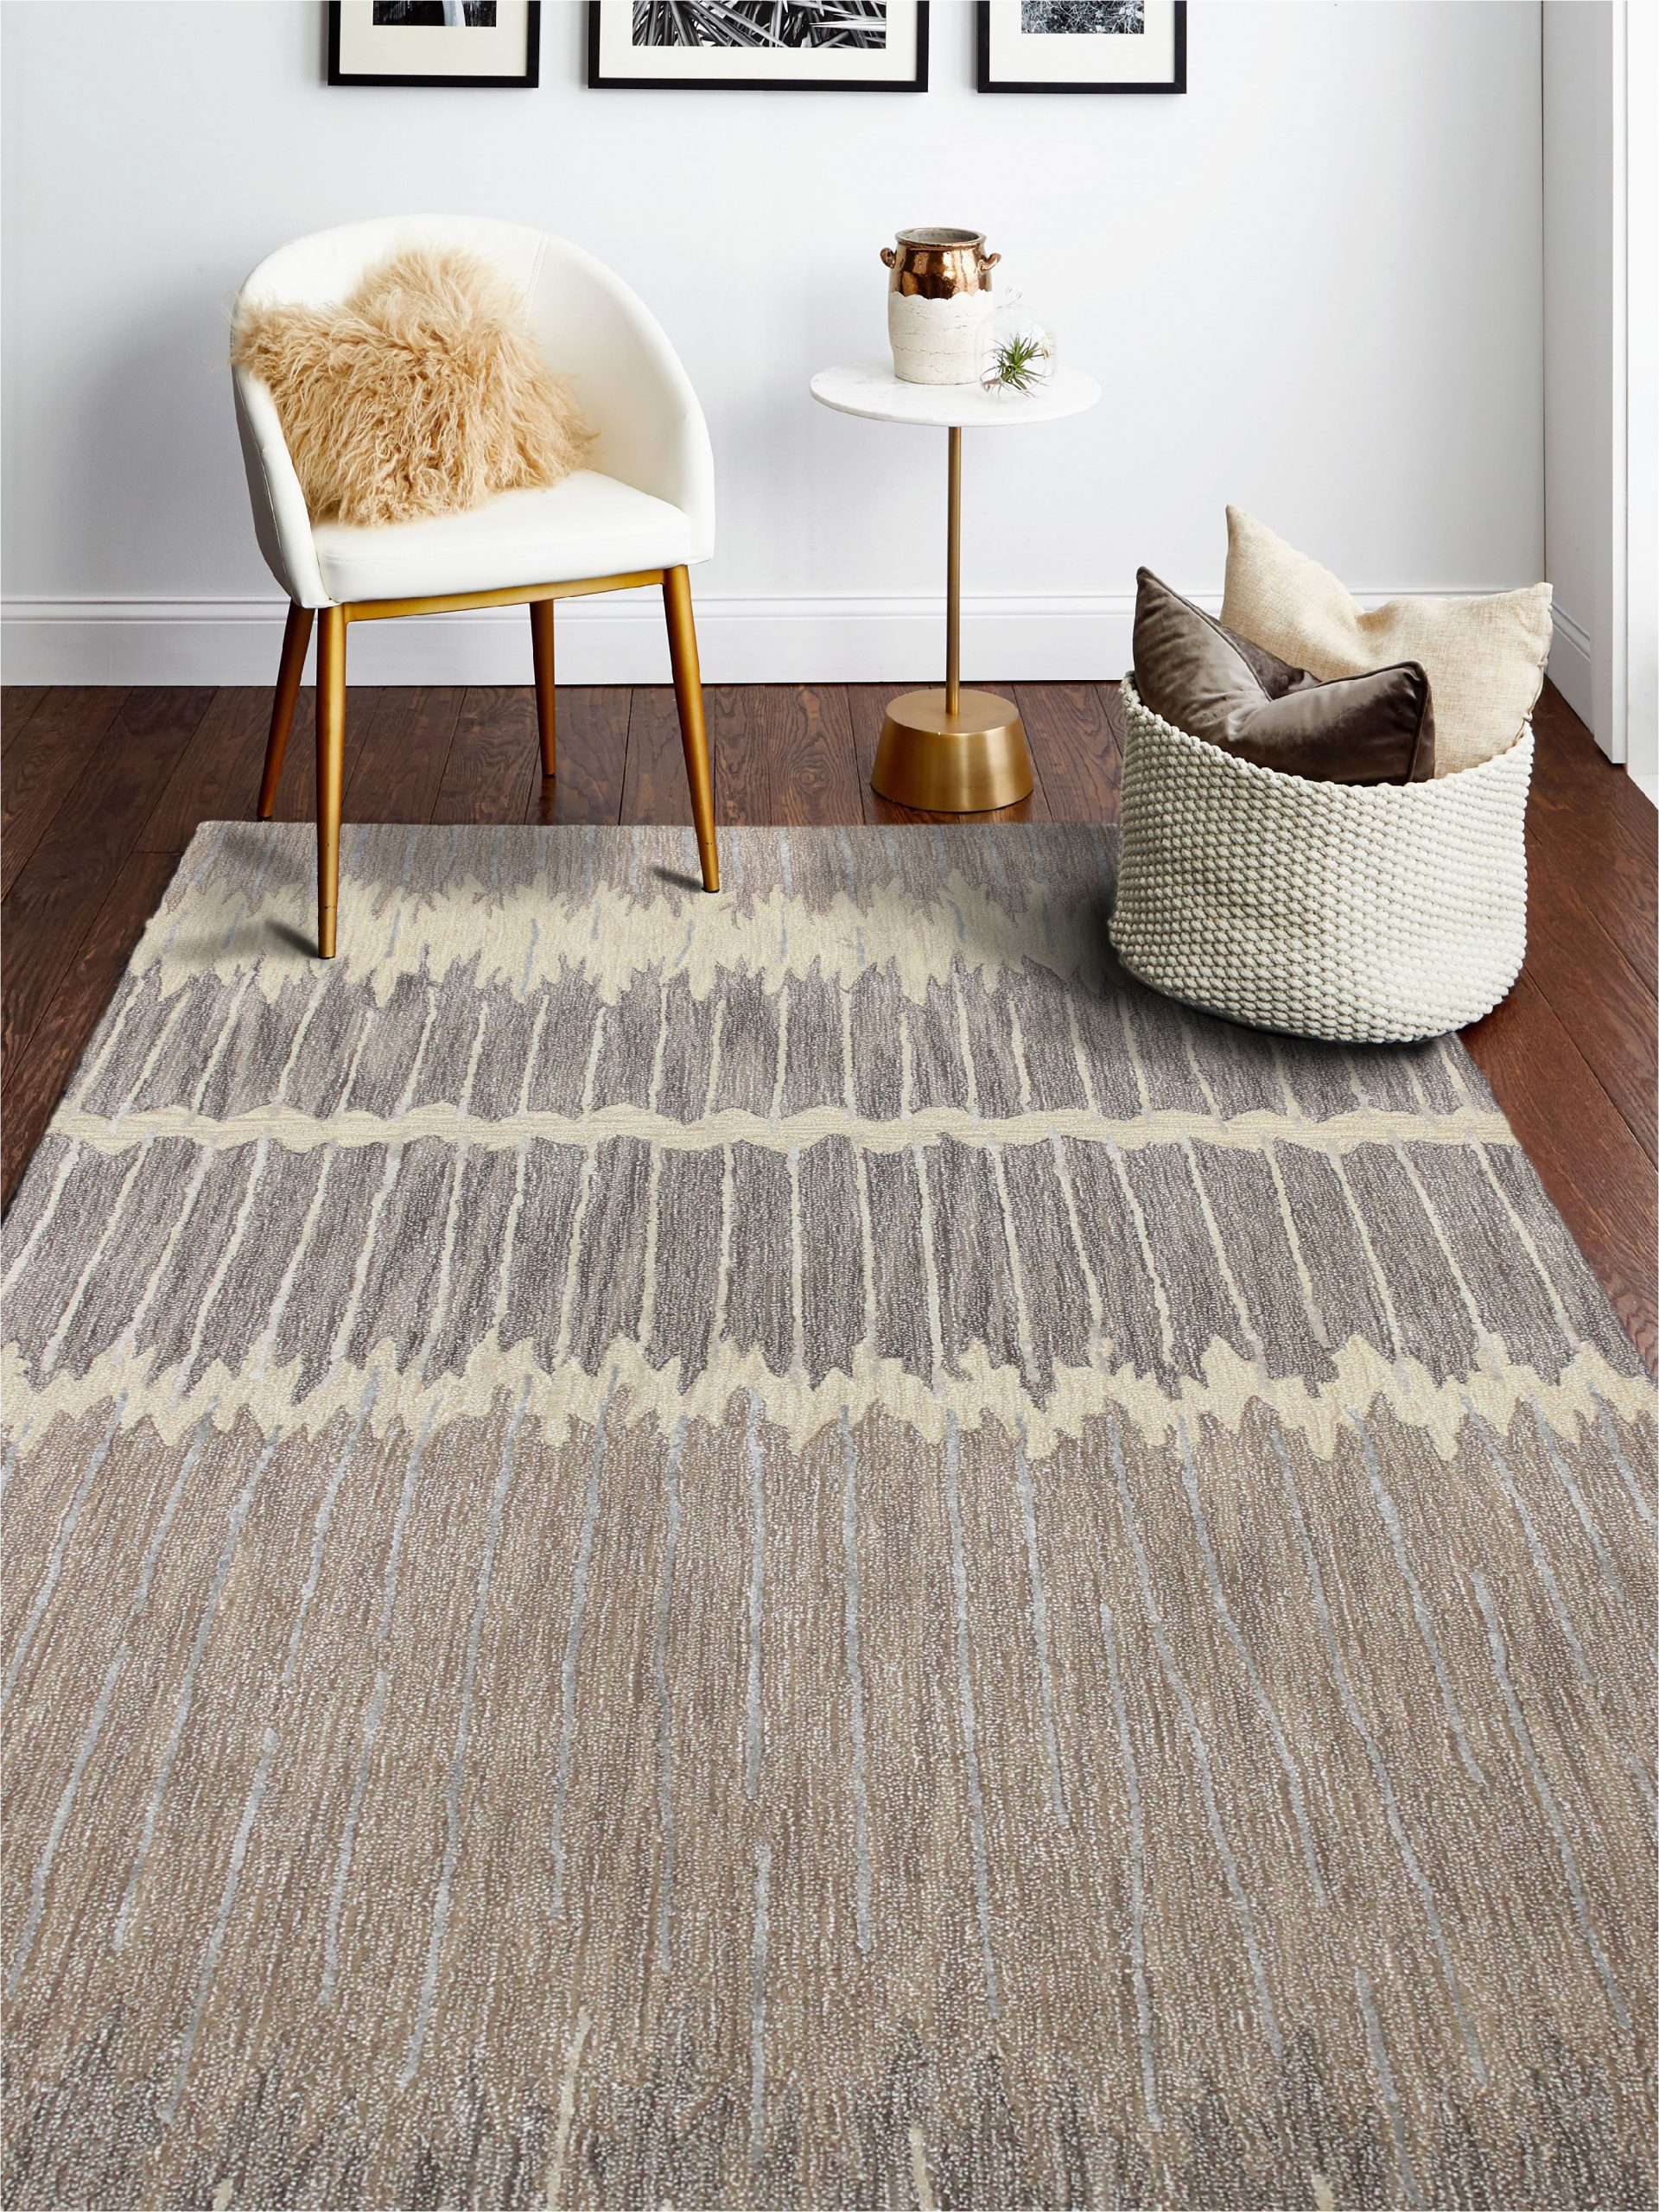 Mainstays Titan Stripe area Rug Bashian Milo Contemporary Striped area Rug Walmart